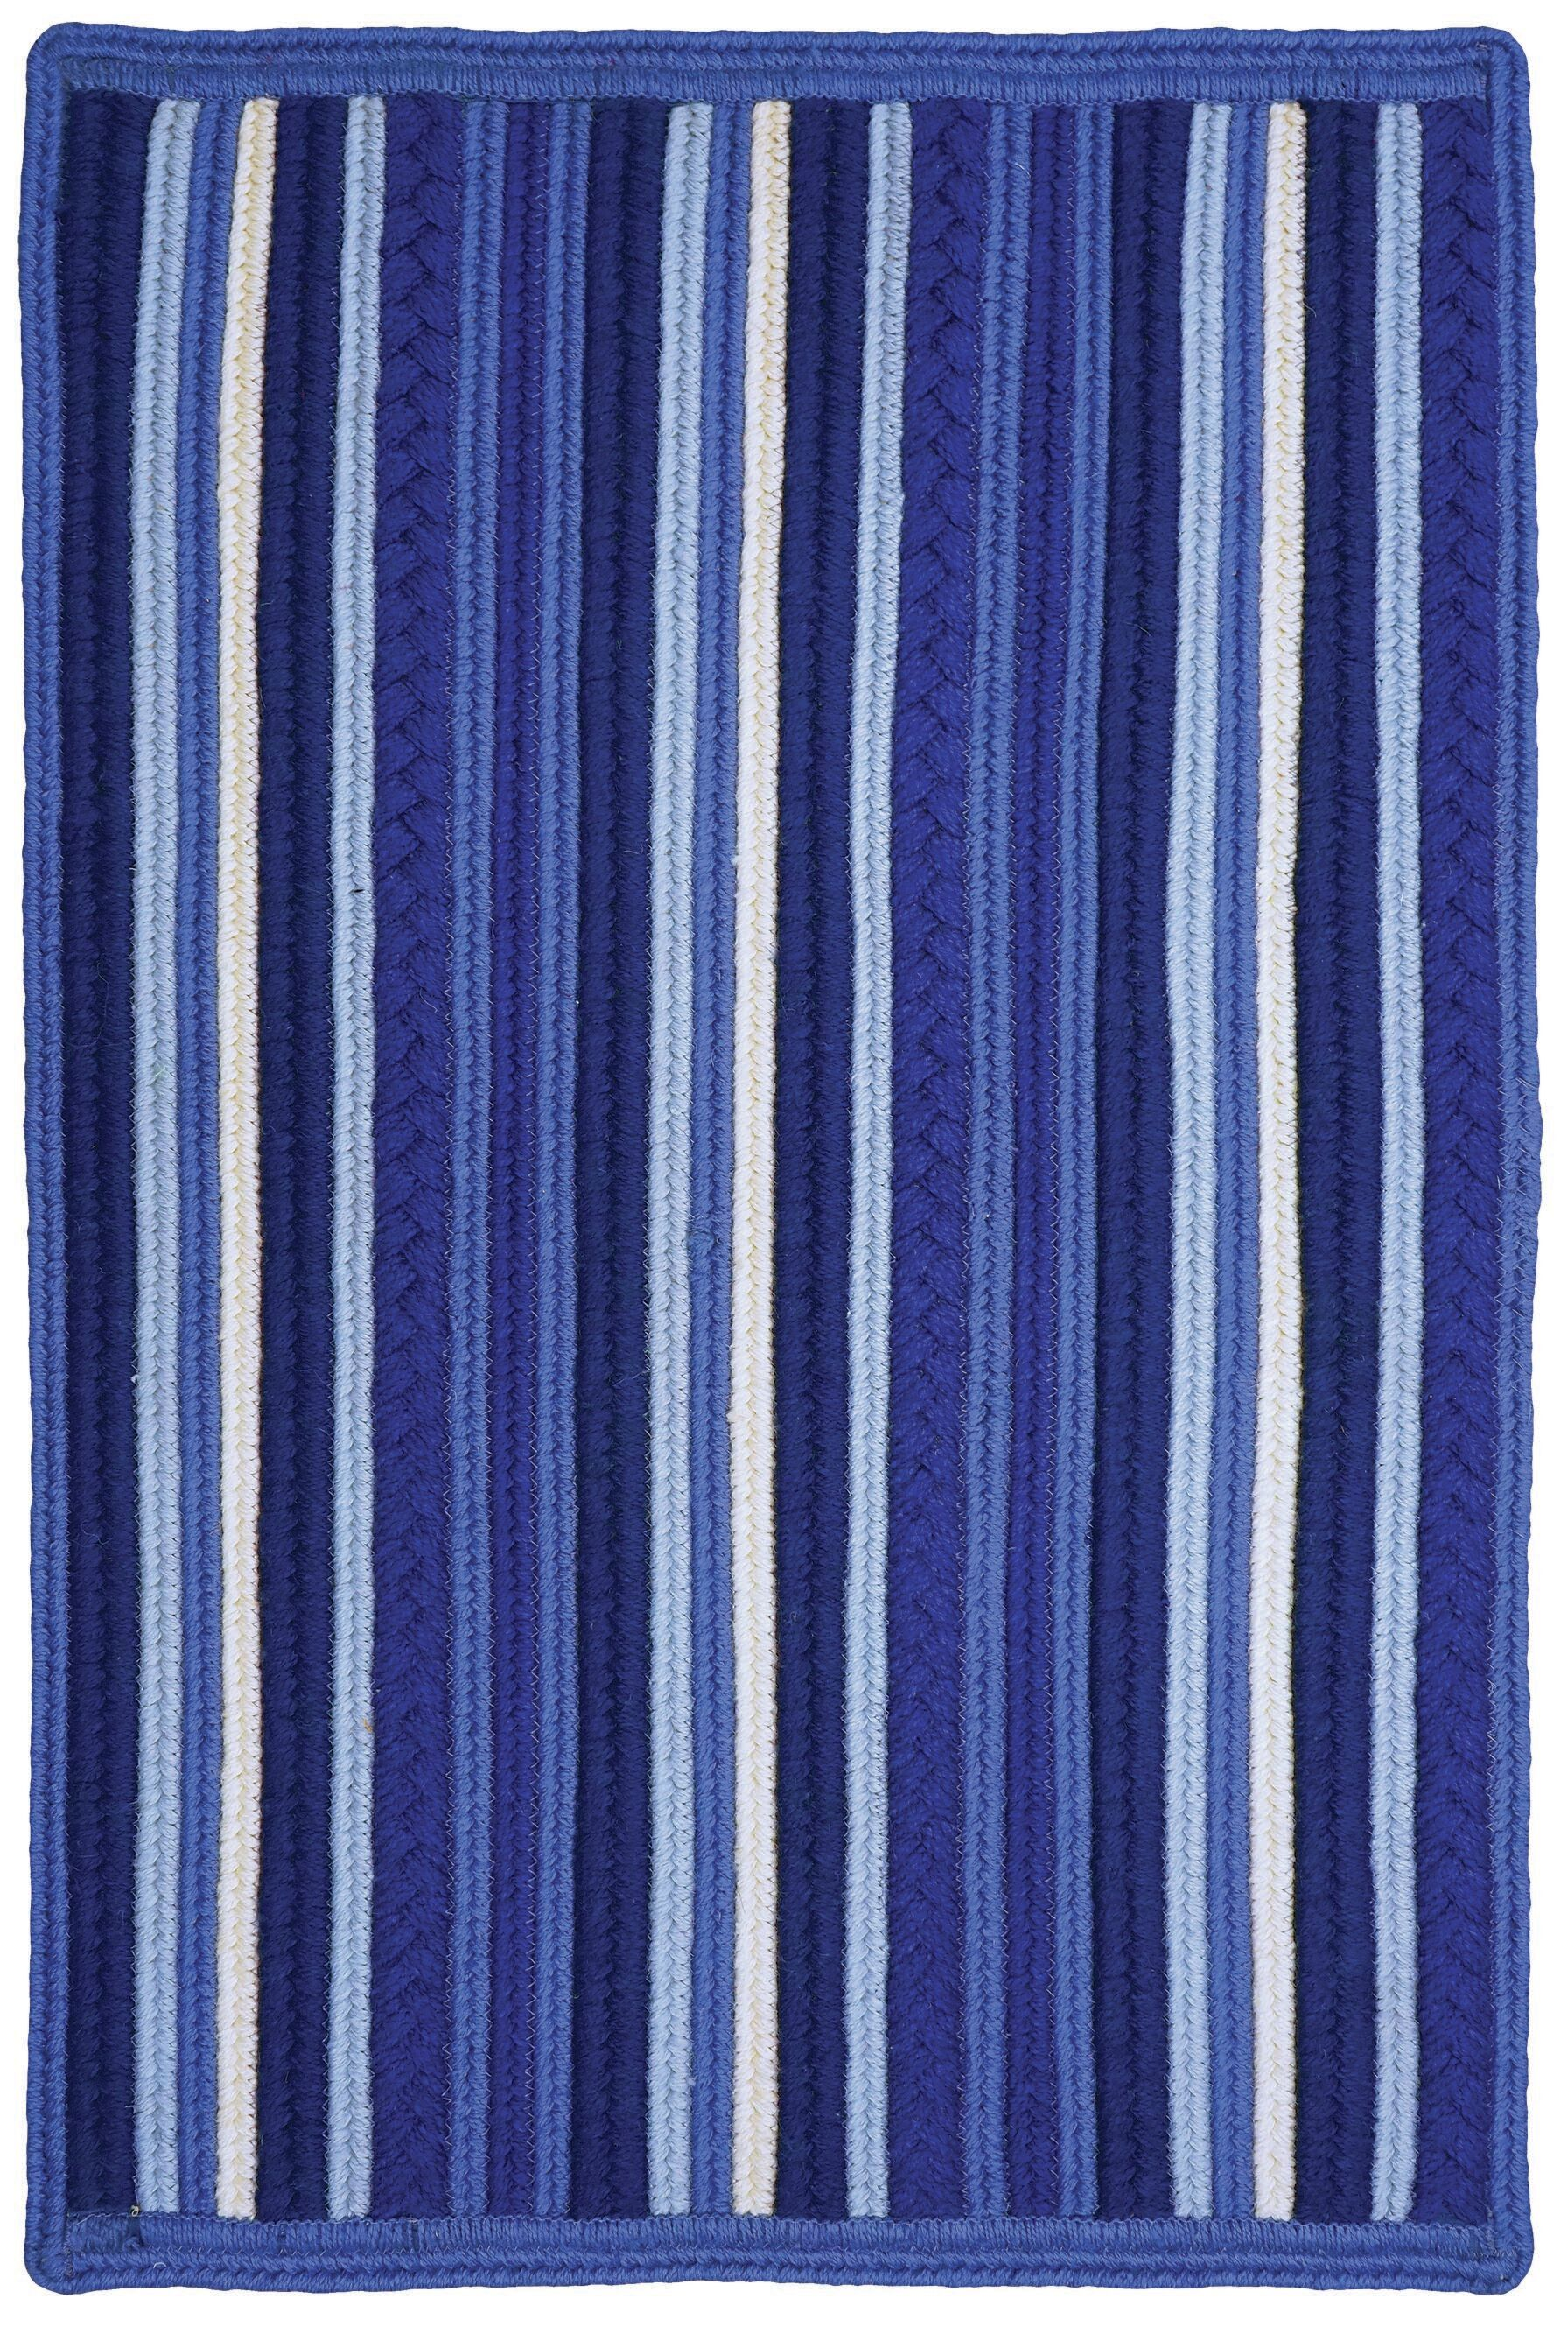 Portsmouth Blue Indoor/Outdoor Area Rug Rug Size: 2'3